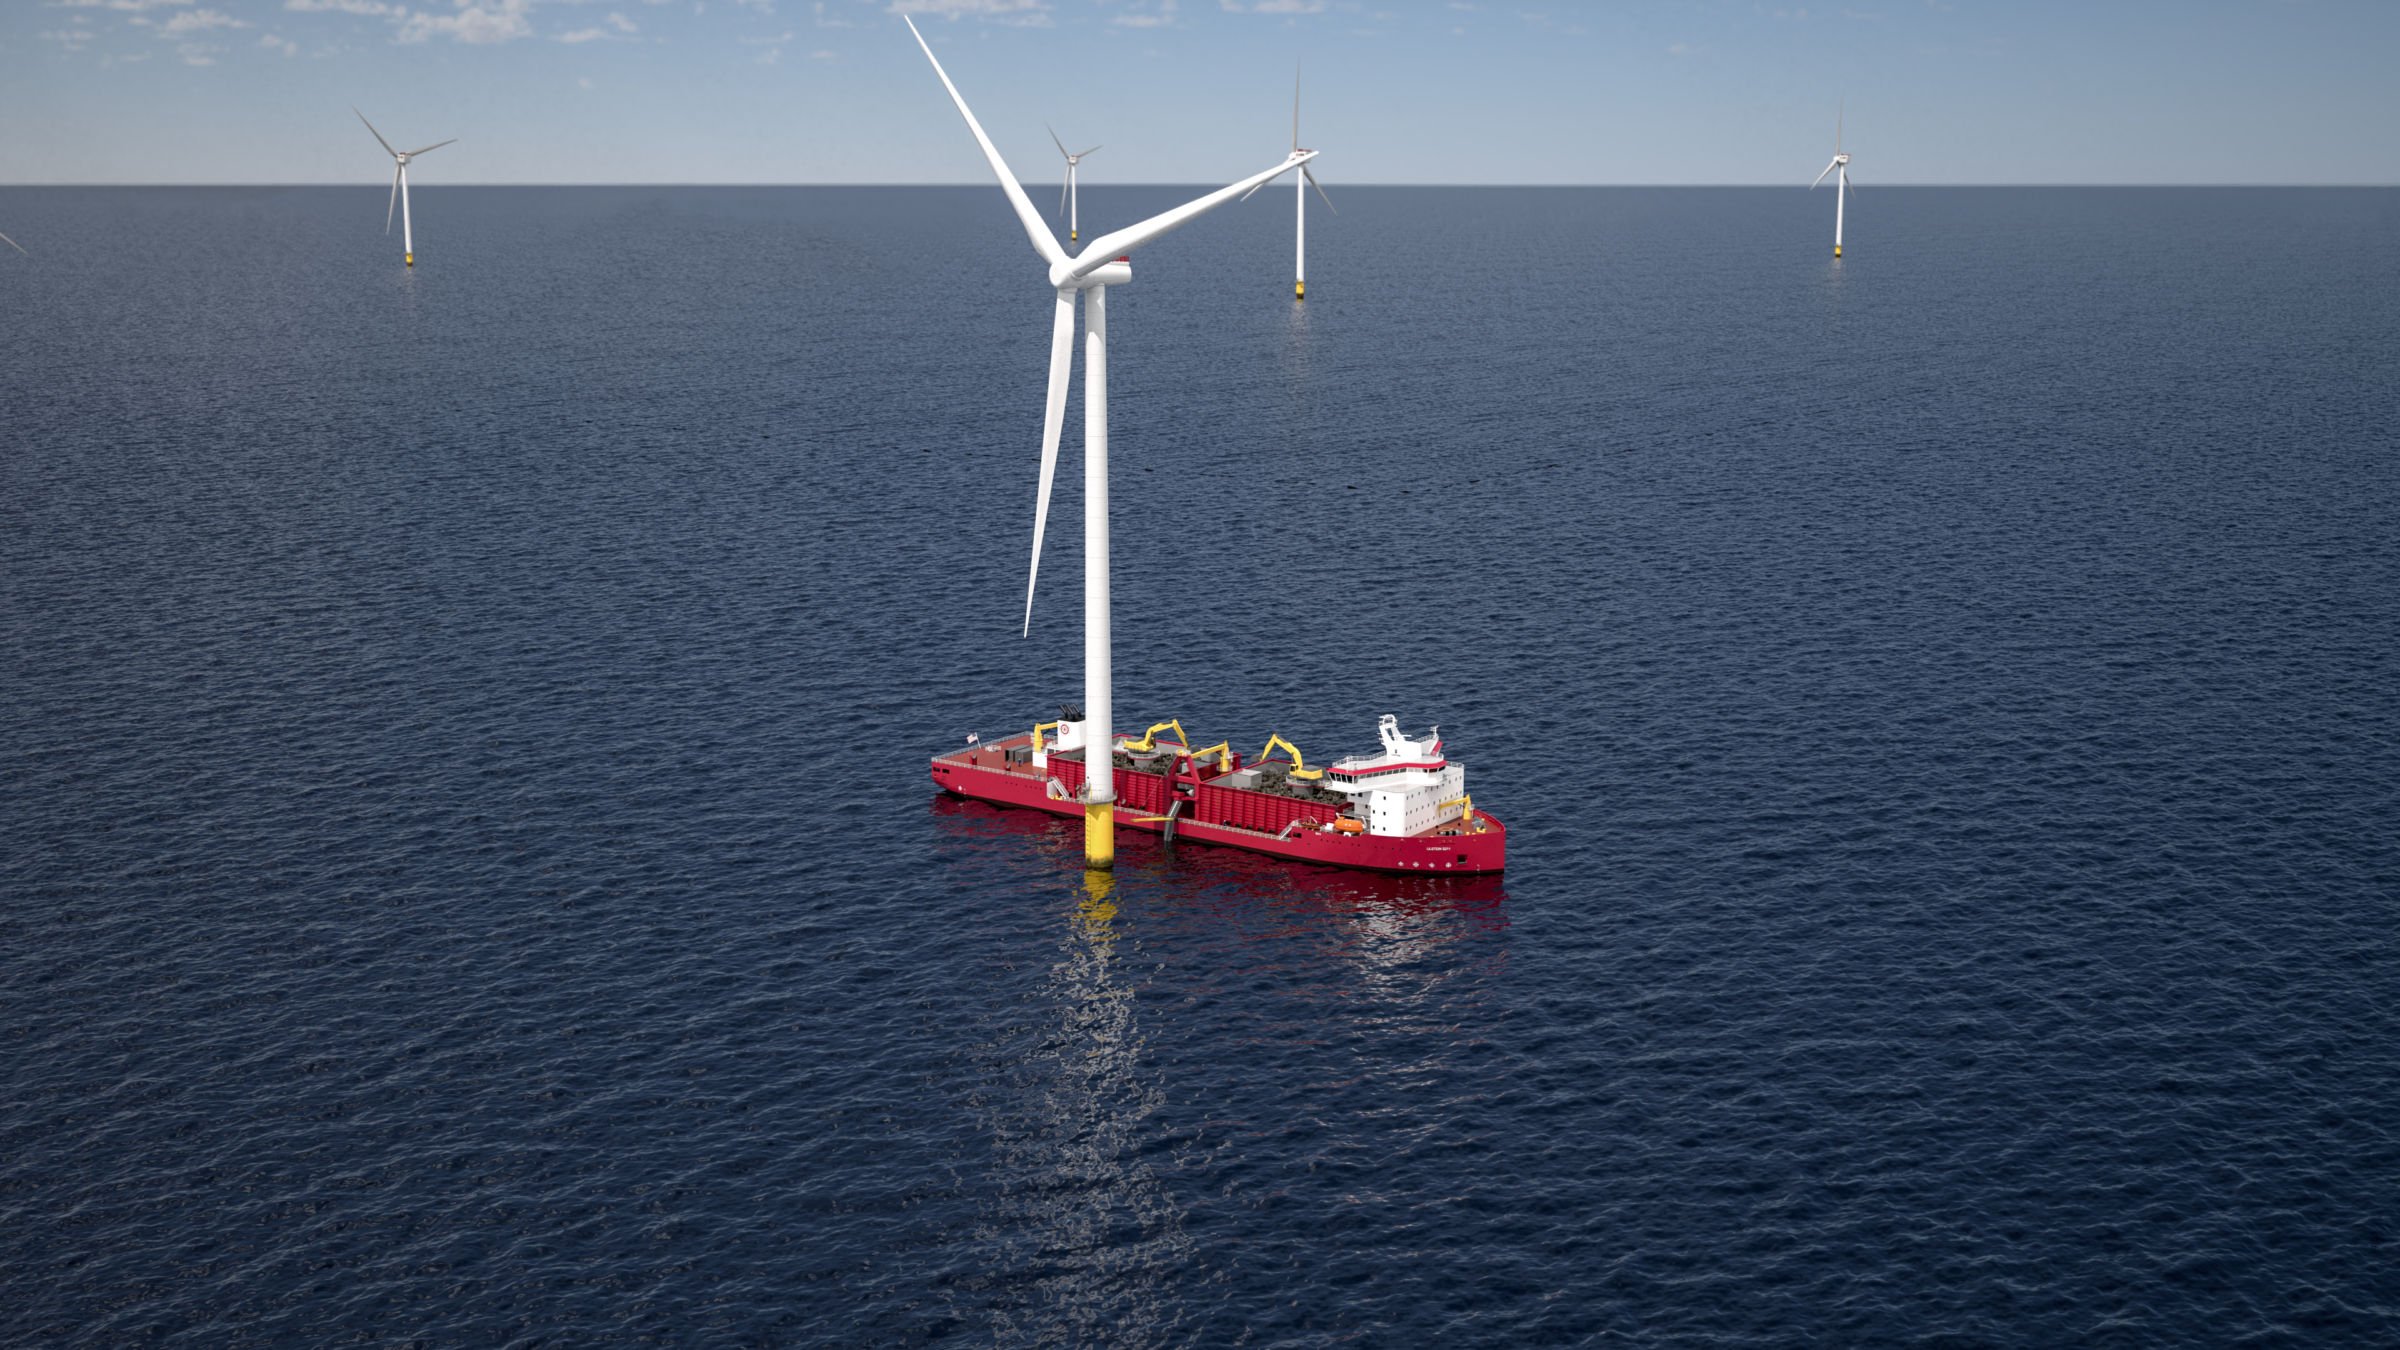 Ulstein awarded design contract for first Jones Act compliant rock installation vessel to serve US Offshore wind